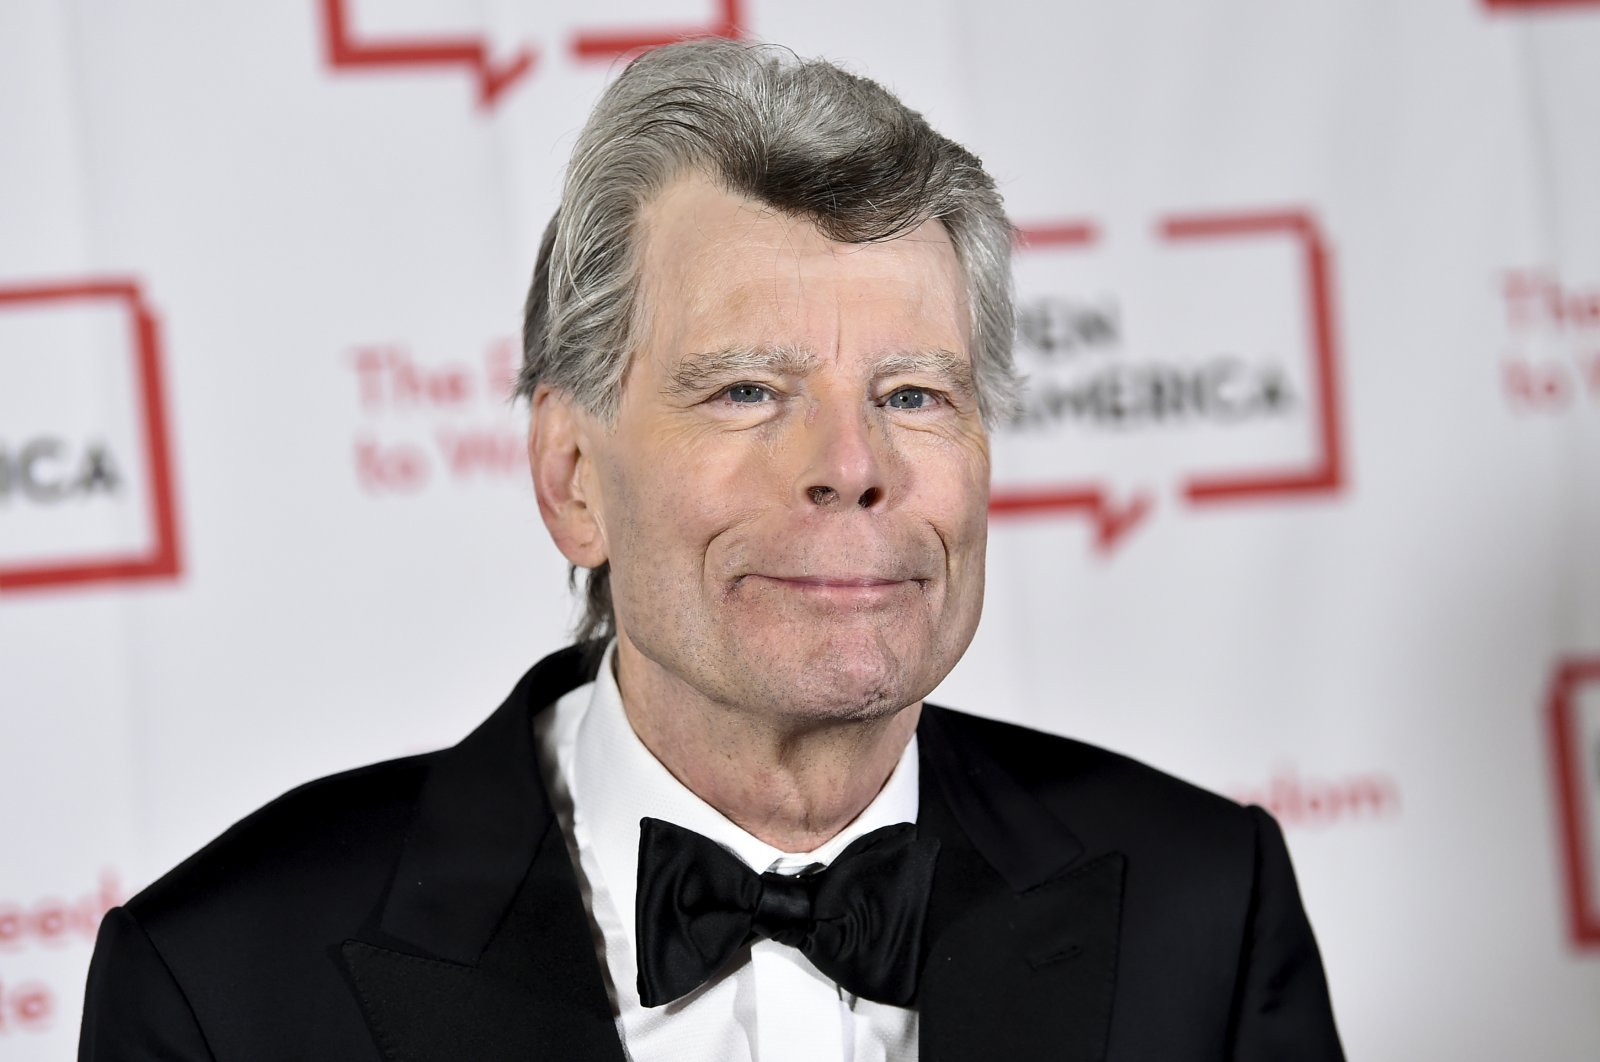 Stephen King attends the 2018 PEN Literary Gala in New York, U.S., May 22, 2018. (AP Photo)